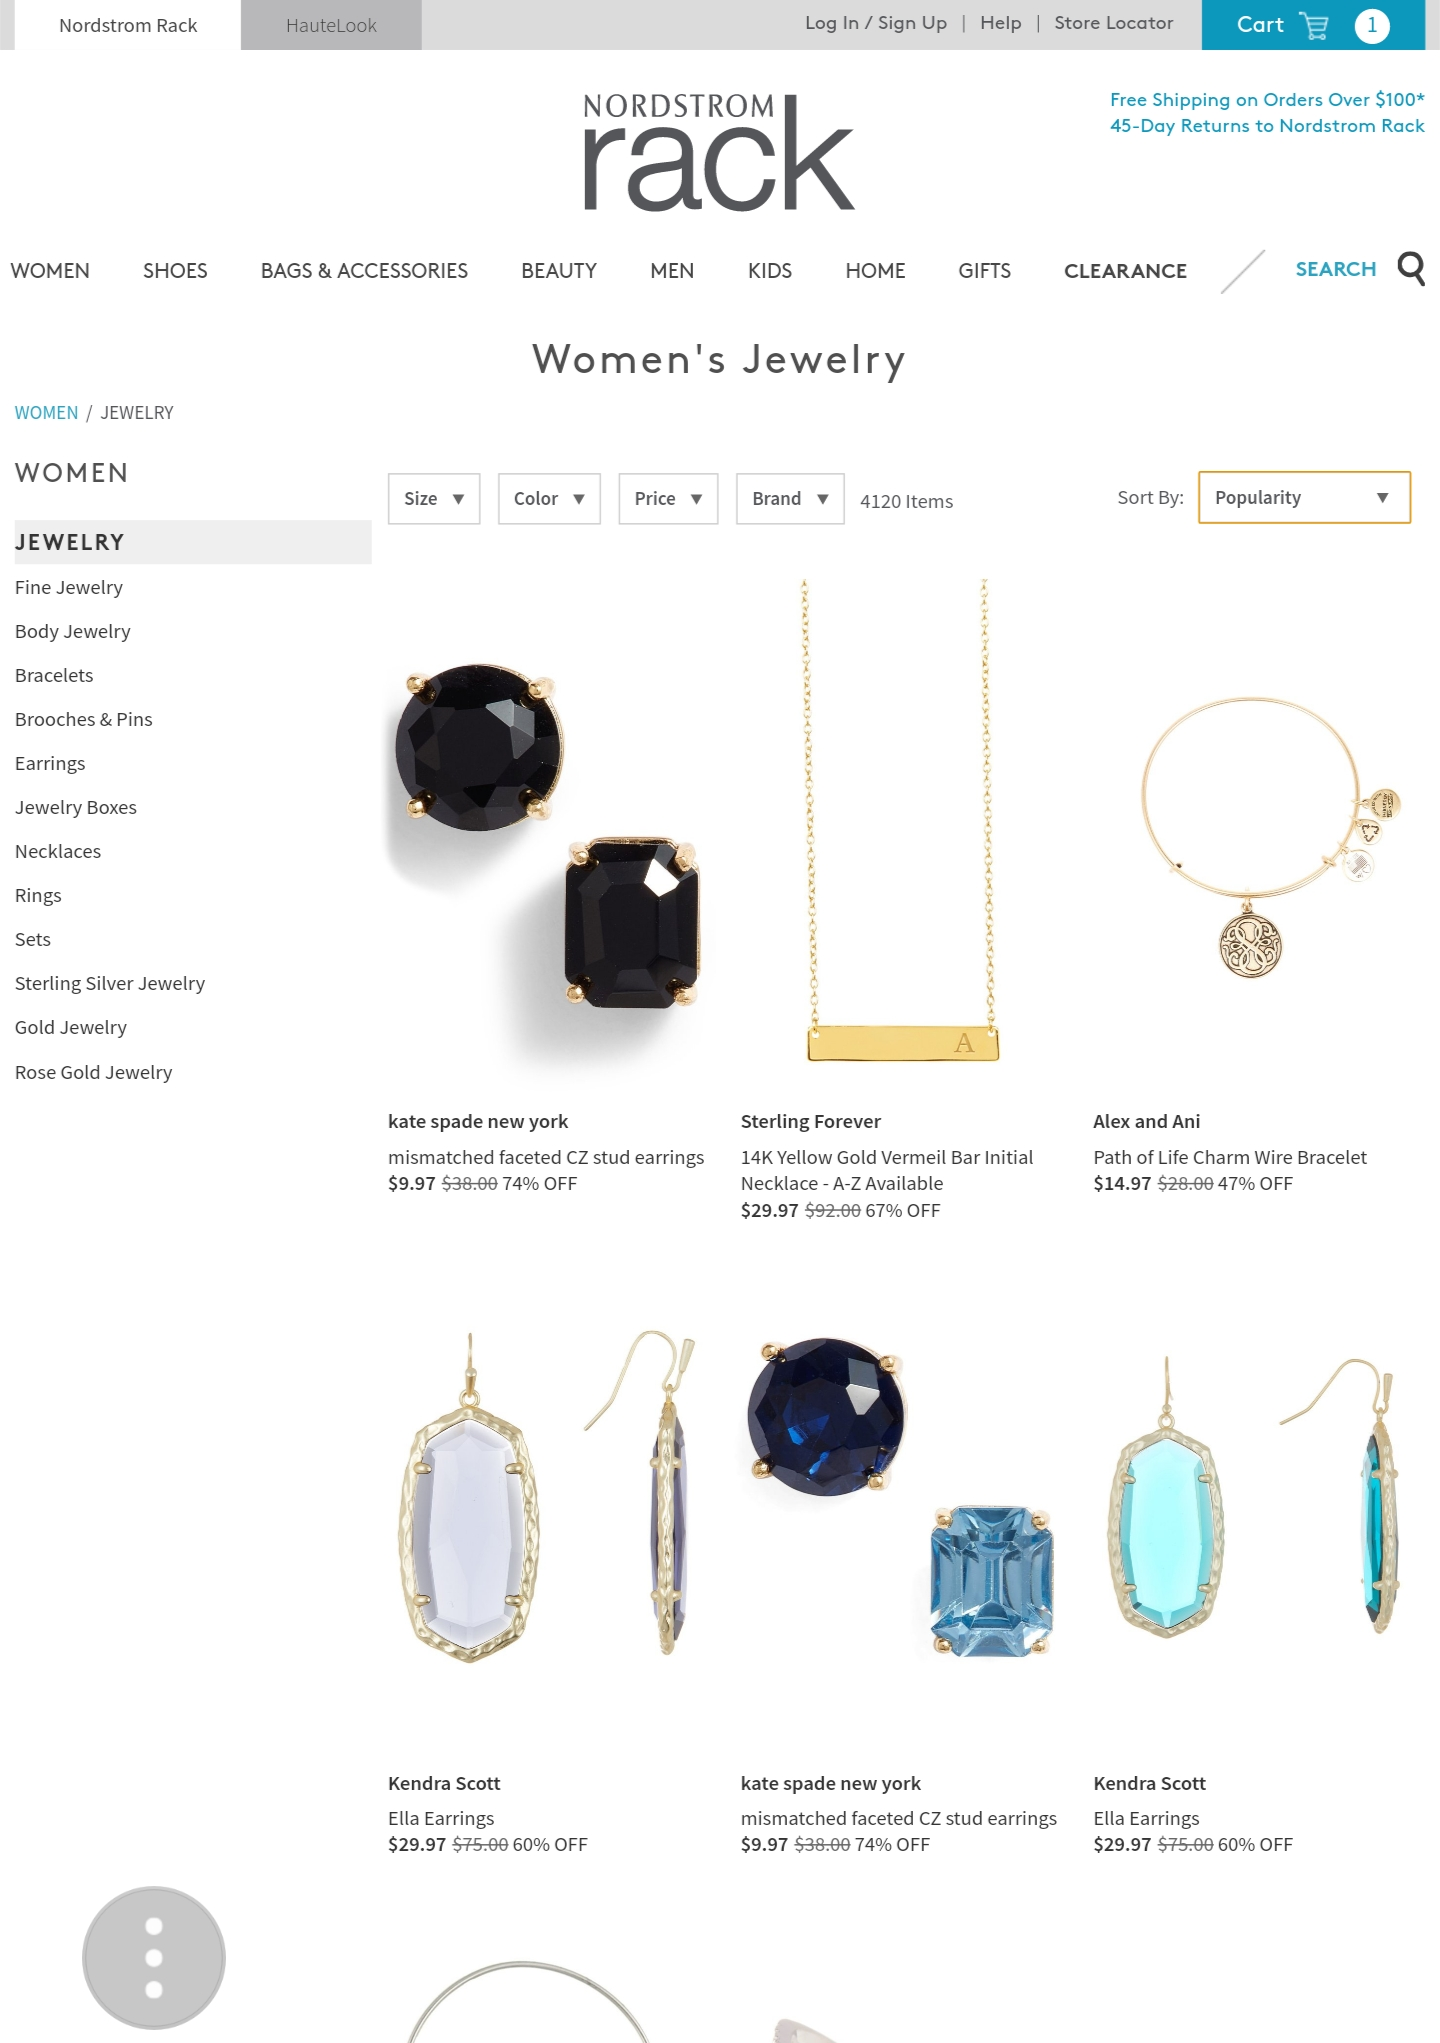 Top place to buy cheap jewelry and affordable jewellery from. Low-priced jewellery for the simple jewelry lovers and bold jewelry. Budget-friendly jewellery for all. Your affordable jewelry gift guide